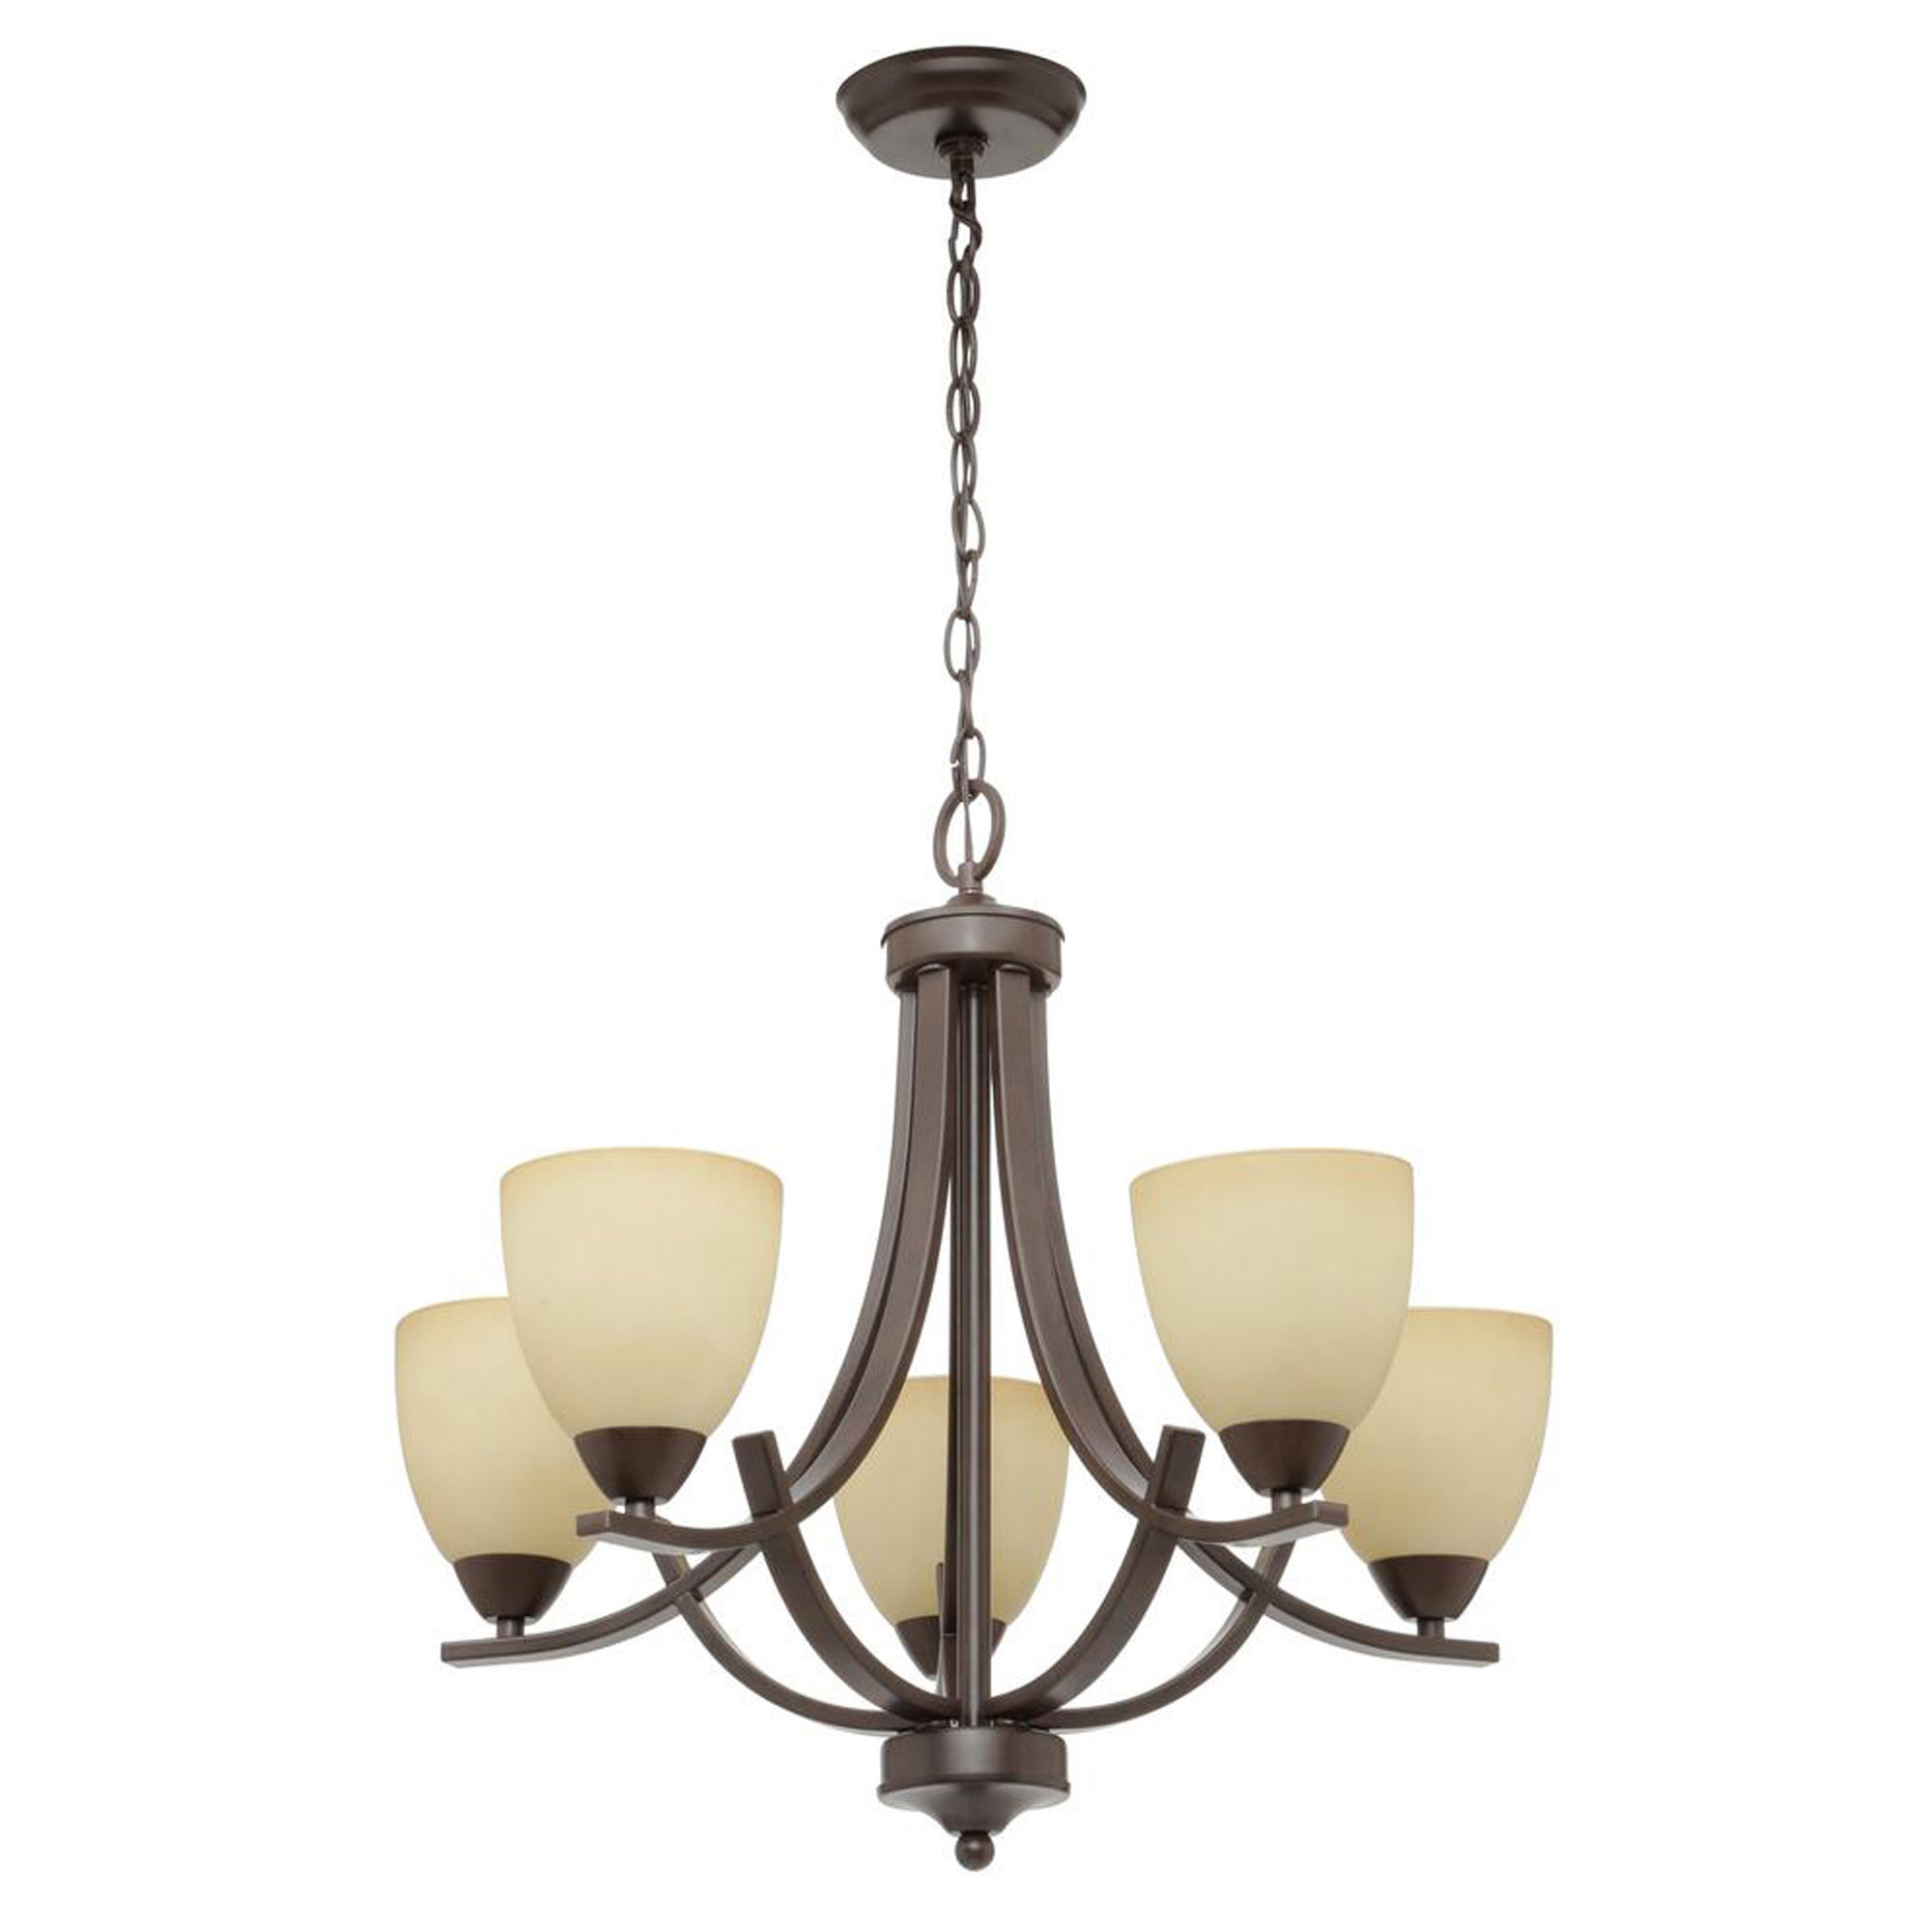 Popular Crofoot 5 Light Shaded Chandelier For Suki 5 Light Shaded Chandeliers (Gallery 9 of 20)